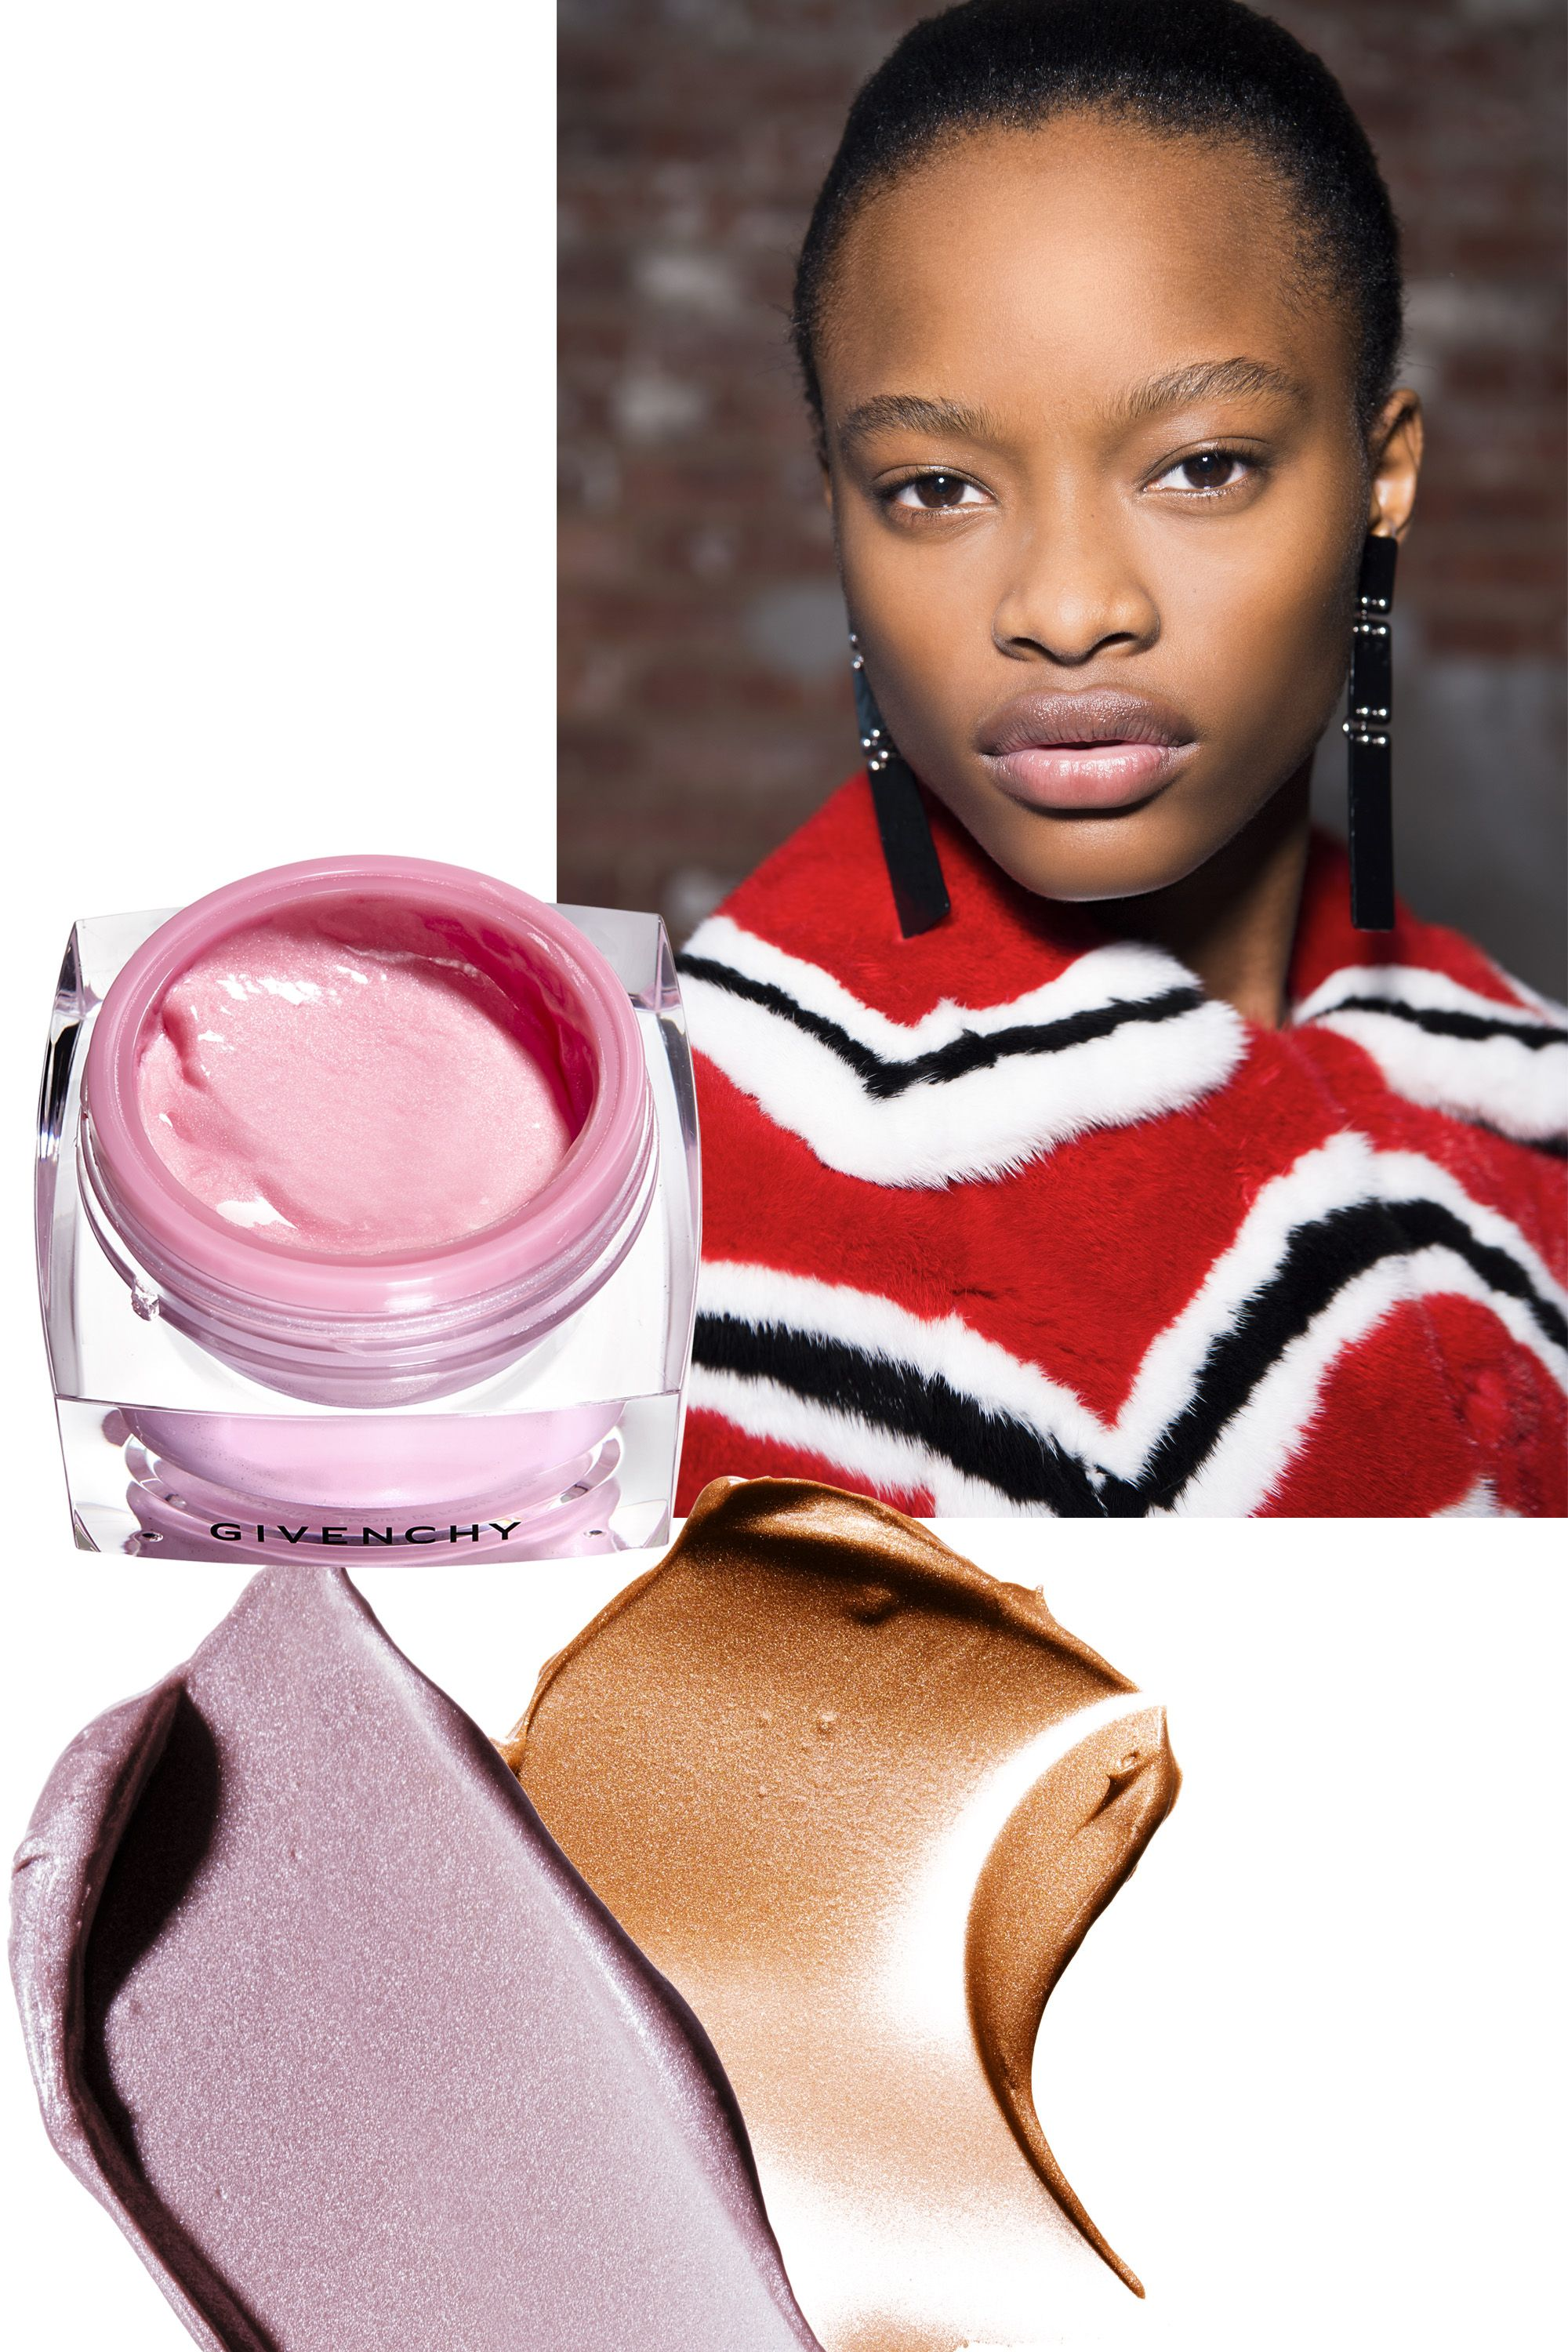 """<p>When choosing a highlighter, keep&nbsp&#x3B;in mind what type of illumination&nbsp&#x3B;you want, says Givenchy Le&nbsp&#x3B;Makeup artistic director Nicolas&nbsp&#x3B;Degennes. """"Powders create a&nbsp&#x3B;matte effect, whereas a gel gives&nbsp&#x3B;you more of a reflection."""" Apply on&nbsp&#x3B;the bridge of your nose, cheekbones,&nbsp&#x3B;and forehead, areas where&nbsp&#x3B;the sun would naturally reflect light.</p><p><em data-redactor-tag=""""em"""" data-verified=""""redactor"""">From left:</em>&nbsp&#x3B;<a href=""""http://www.neimanmarcus.com/Givenchy-Limited-Edition-M-233moire-de-Forme-Highlighter/prod197680011/p.prod"""" target=""""_blank"""" data-tracking-id=""""recirc-text-link"""">Givenchy Mémoire de Forme Highlighter</a> ($45)&#x3B; <a href=""""https://www.maybelline.com/face-makeup/contouring/facestudio-master-strobing-liquid-illuminating-highlighter/medium-nude-glow"""" target=""""_blank"""" data-tracking-id=""""recirc-text-link"""">Maybelline New York FaceStudio Master Strobing Liquid Illuminating Highlighter</a> in Medium/Nude Glow and Light/Iridescent ($10 each).</p>"""